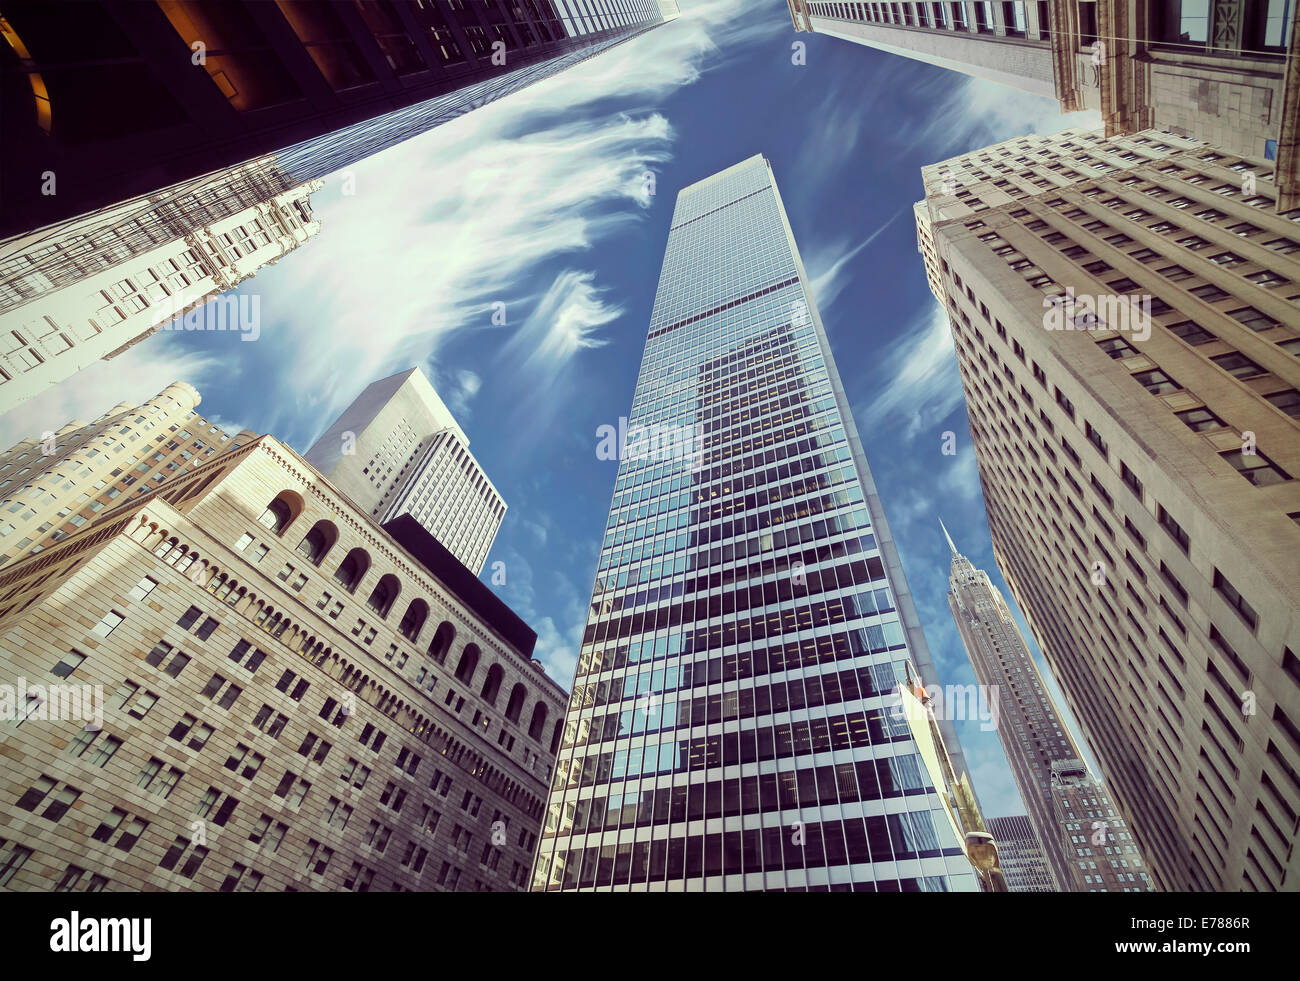 Retro filtered view of skyscrapers in Lower Manhattan, looking up at sky, New York City. - Stock Image